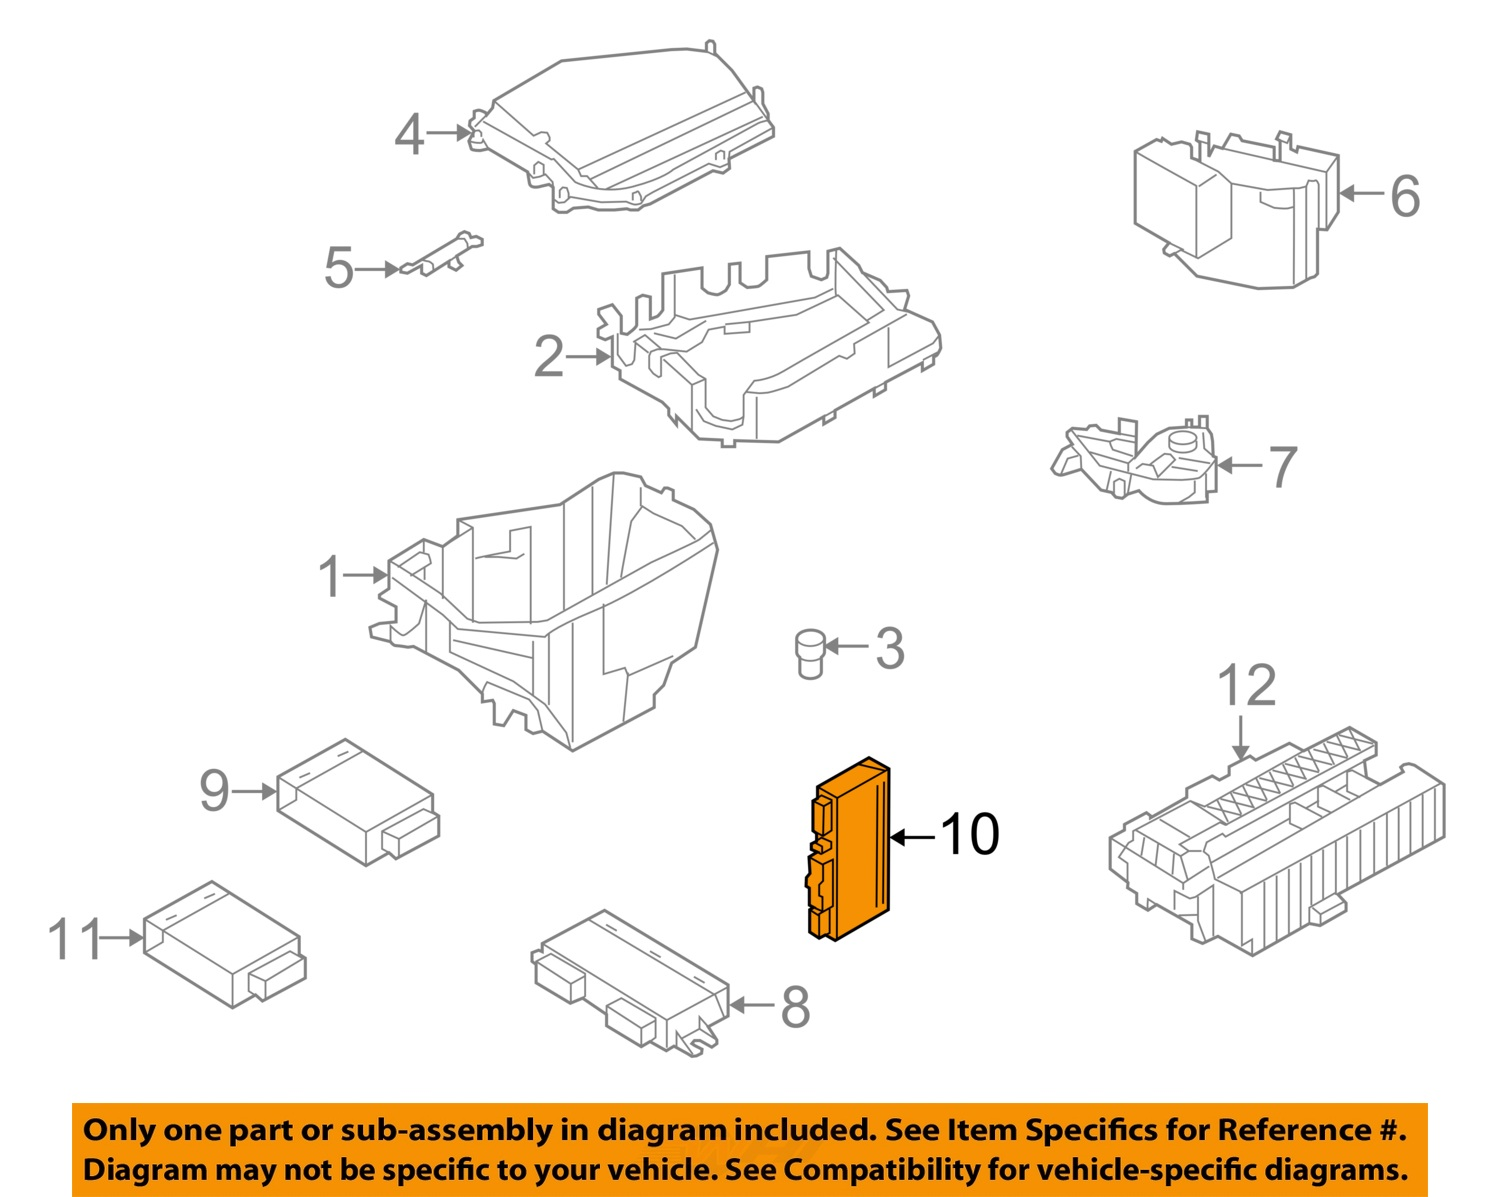 BMW 3 Series » Bmw Z4 Parts Diagrams - BMW Car Pictures, All Types ...